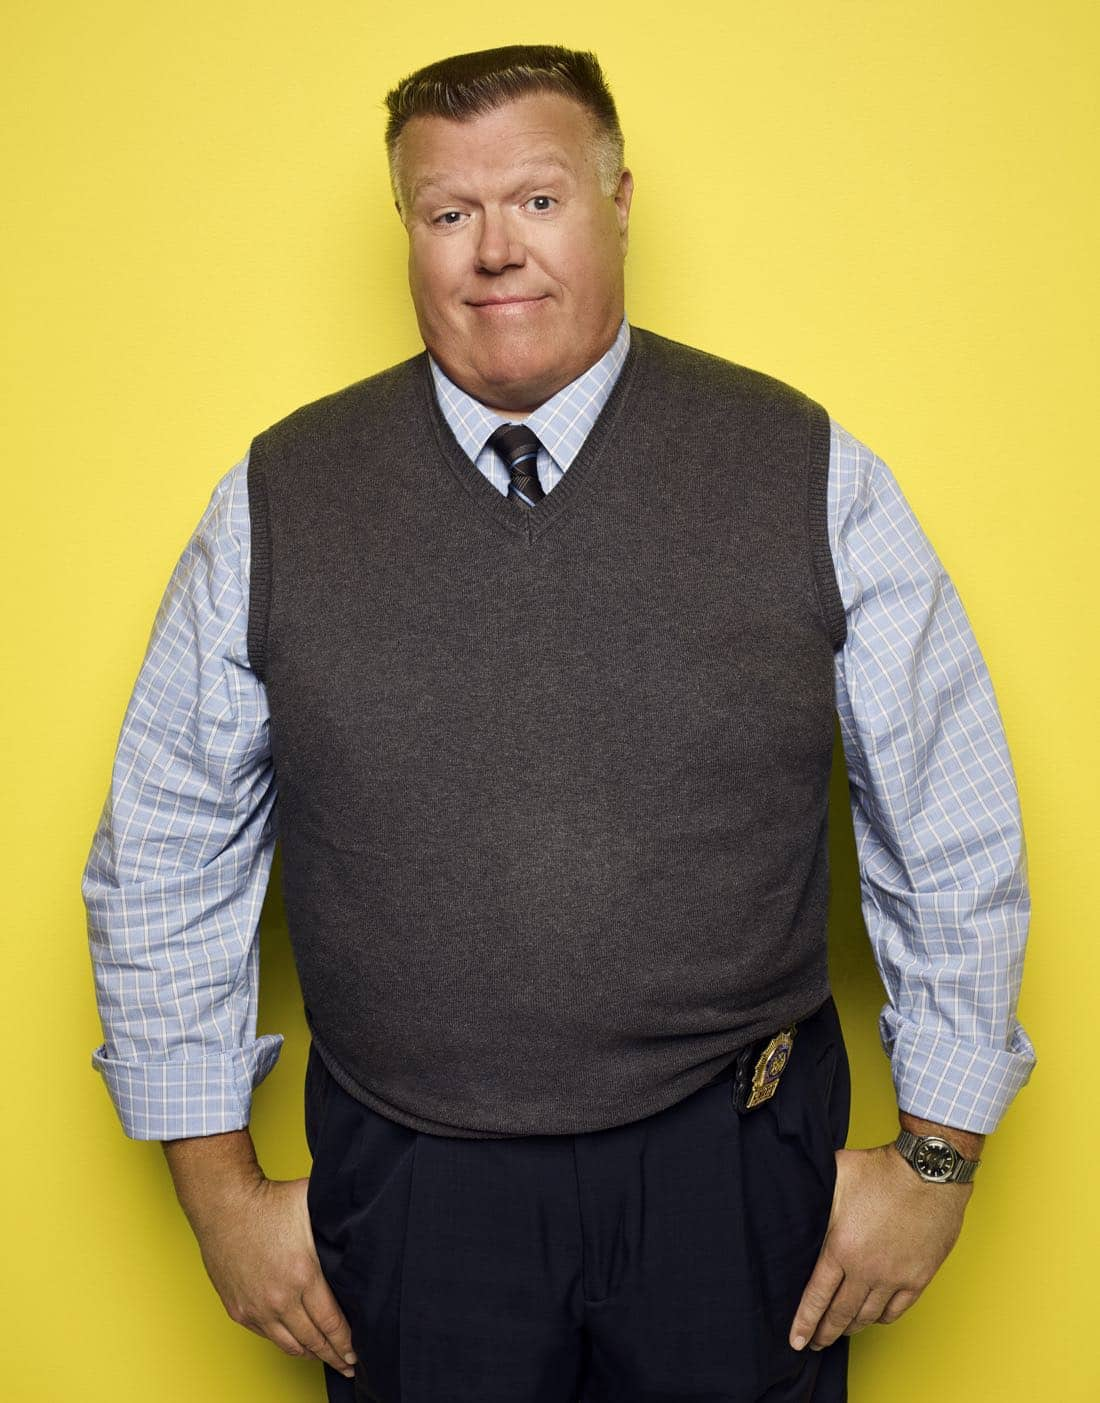 BROOKLYN NINE-NINE: Joel McKinnon Miller as Detective Scully. BROOKLYN NINE-NINE Season Five premieres Tuesday, Sept. 26 (9:30-10:00 PM ET/PT) on FOX. ©2017 Fox Broadcasting Co. CR: Robert Trachtenberg/FOX